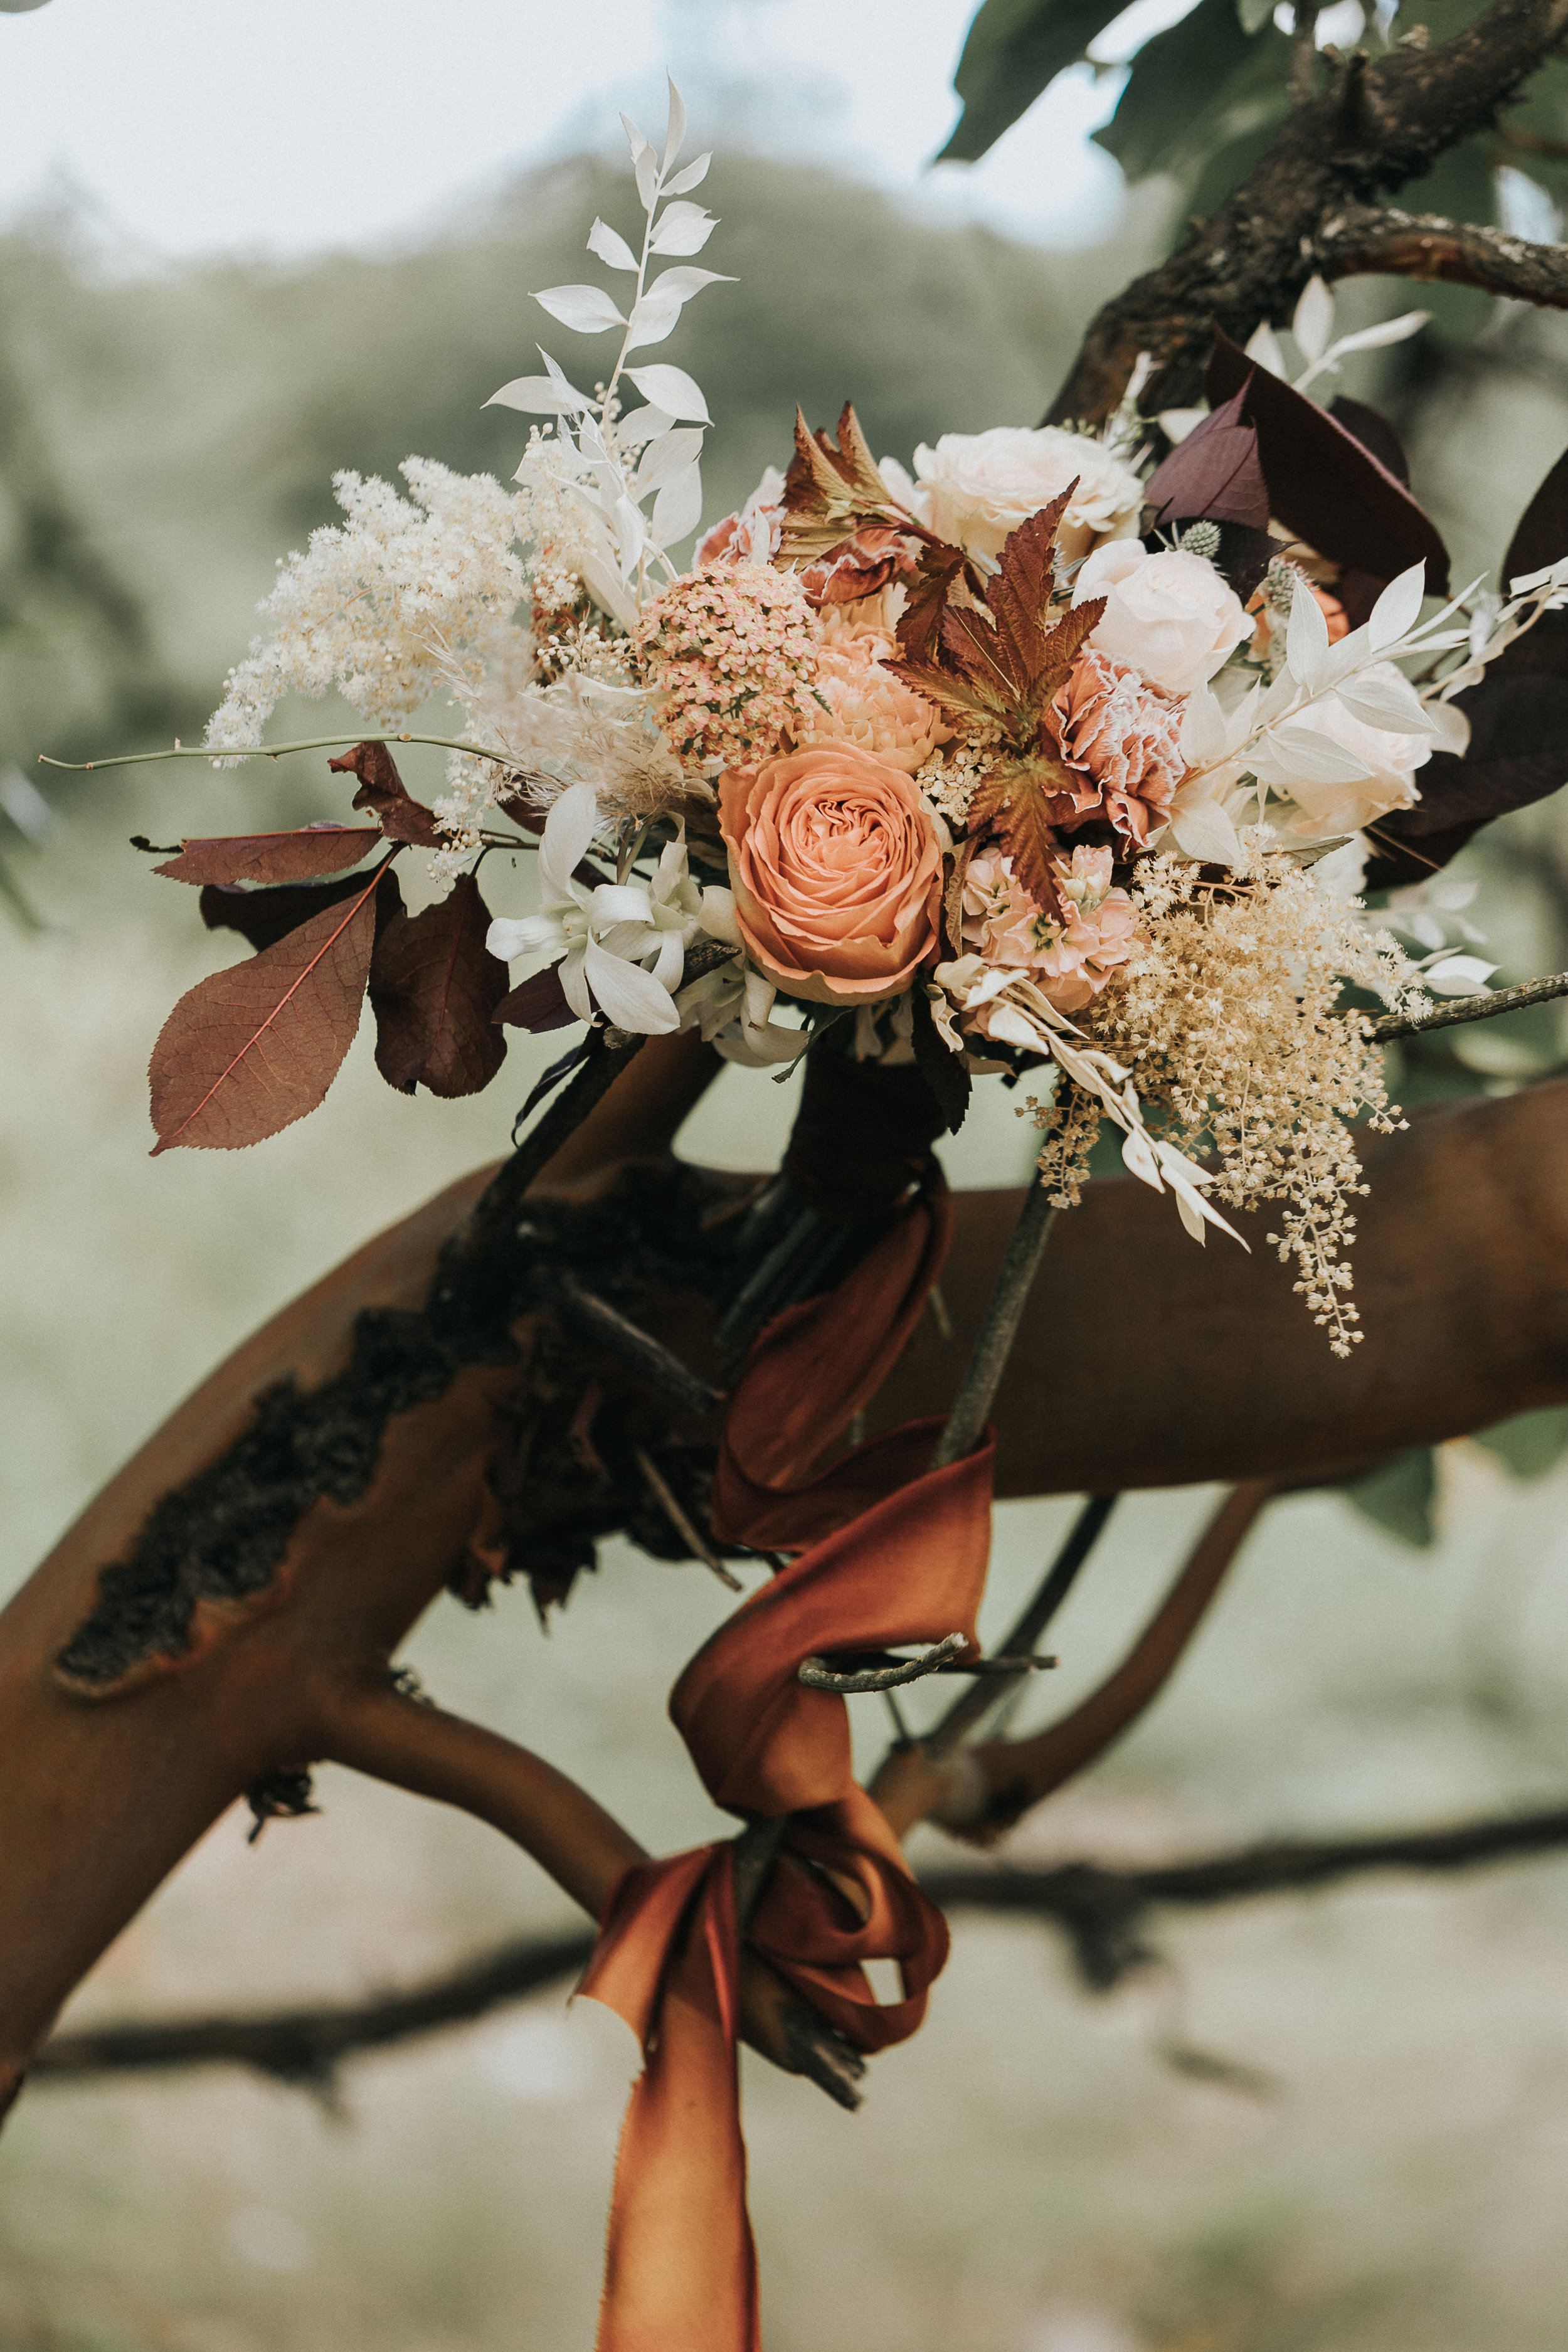 discoveryparkelopement - runaway with me elopements - seattle elopement-39.jpg